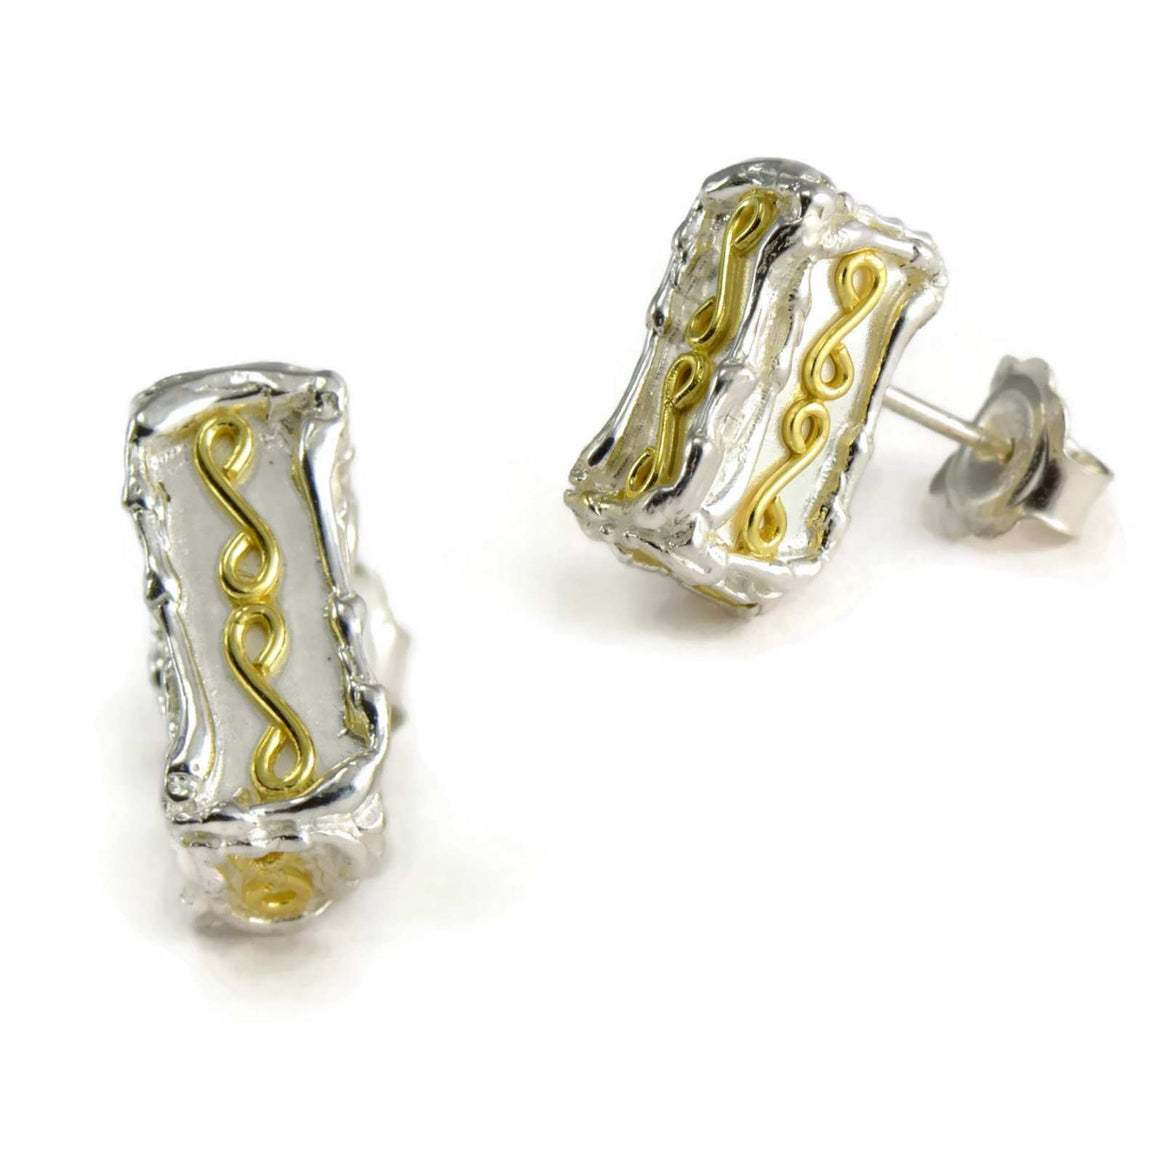 18ct gold and silver large patterned 3D rectangle stud earrings, geometrical designs